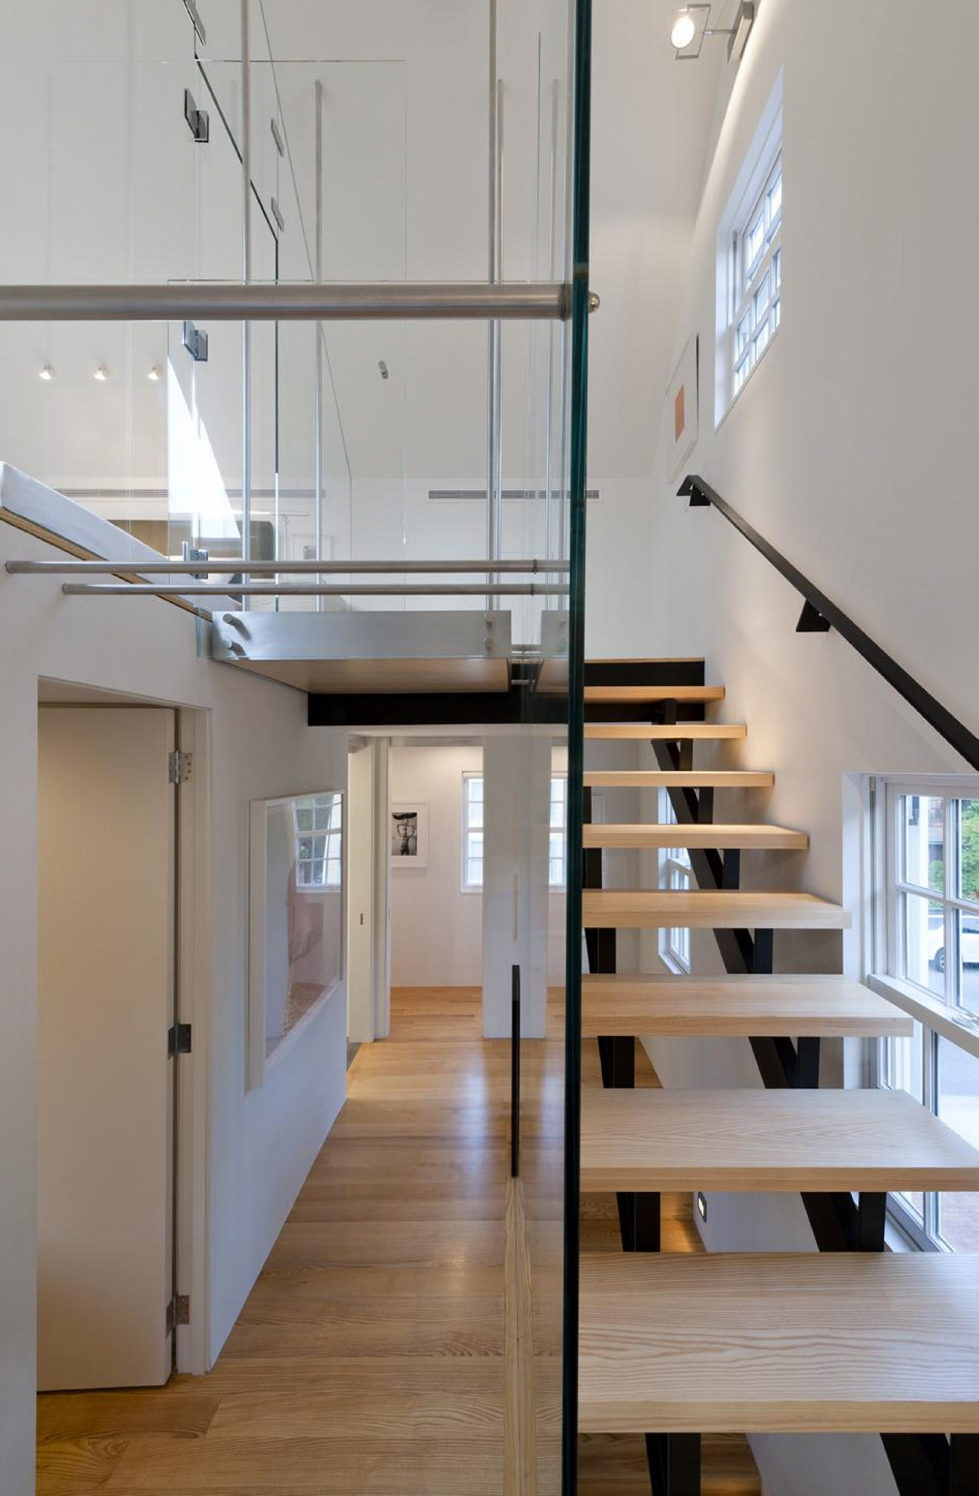 Renovation Of The Historical House From Robert M. Gurney Architect Studio 19